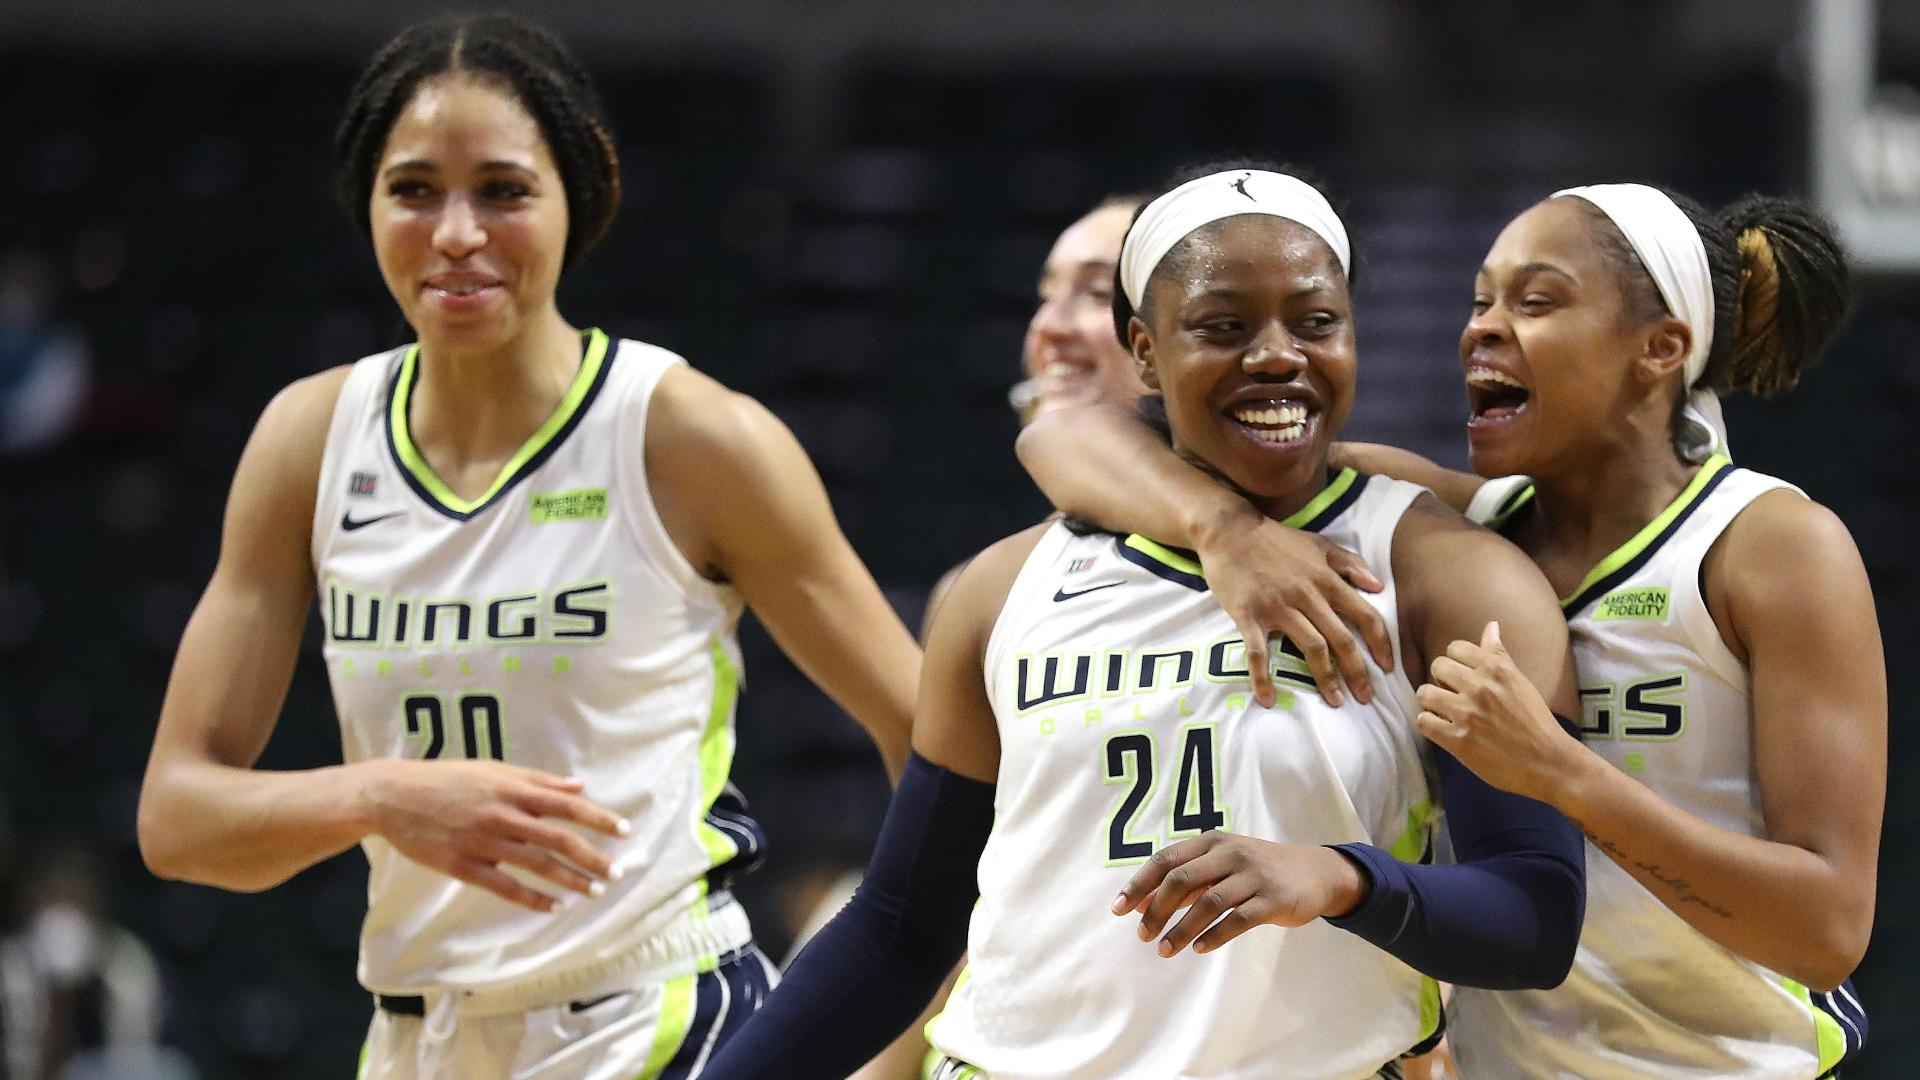 Arike Ogunbowale calls game for Wings with deep 3-pointer